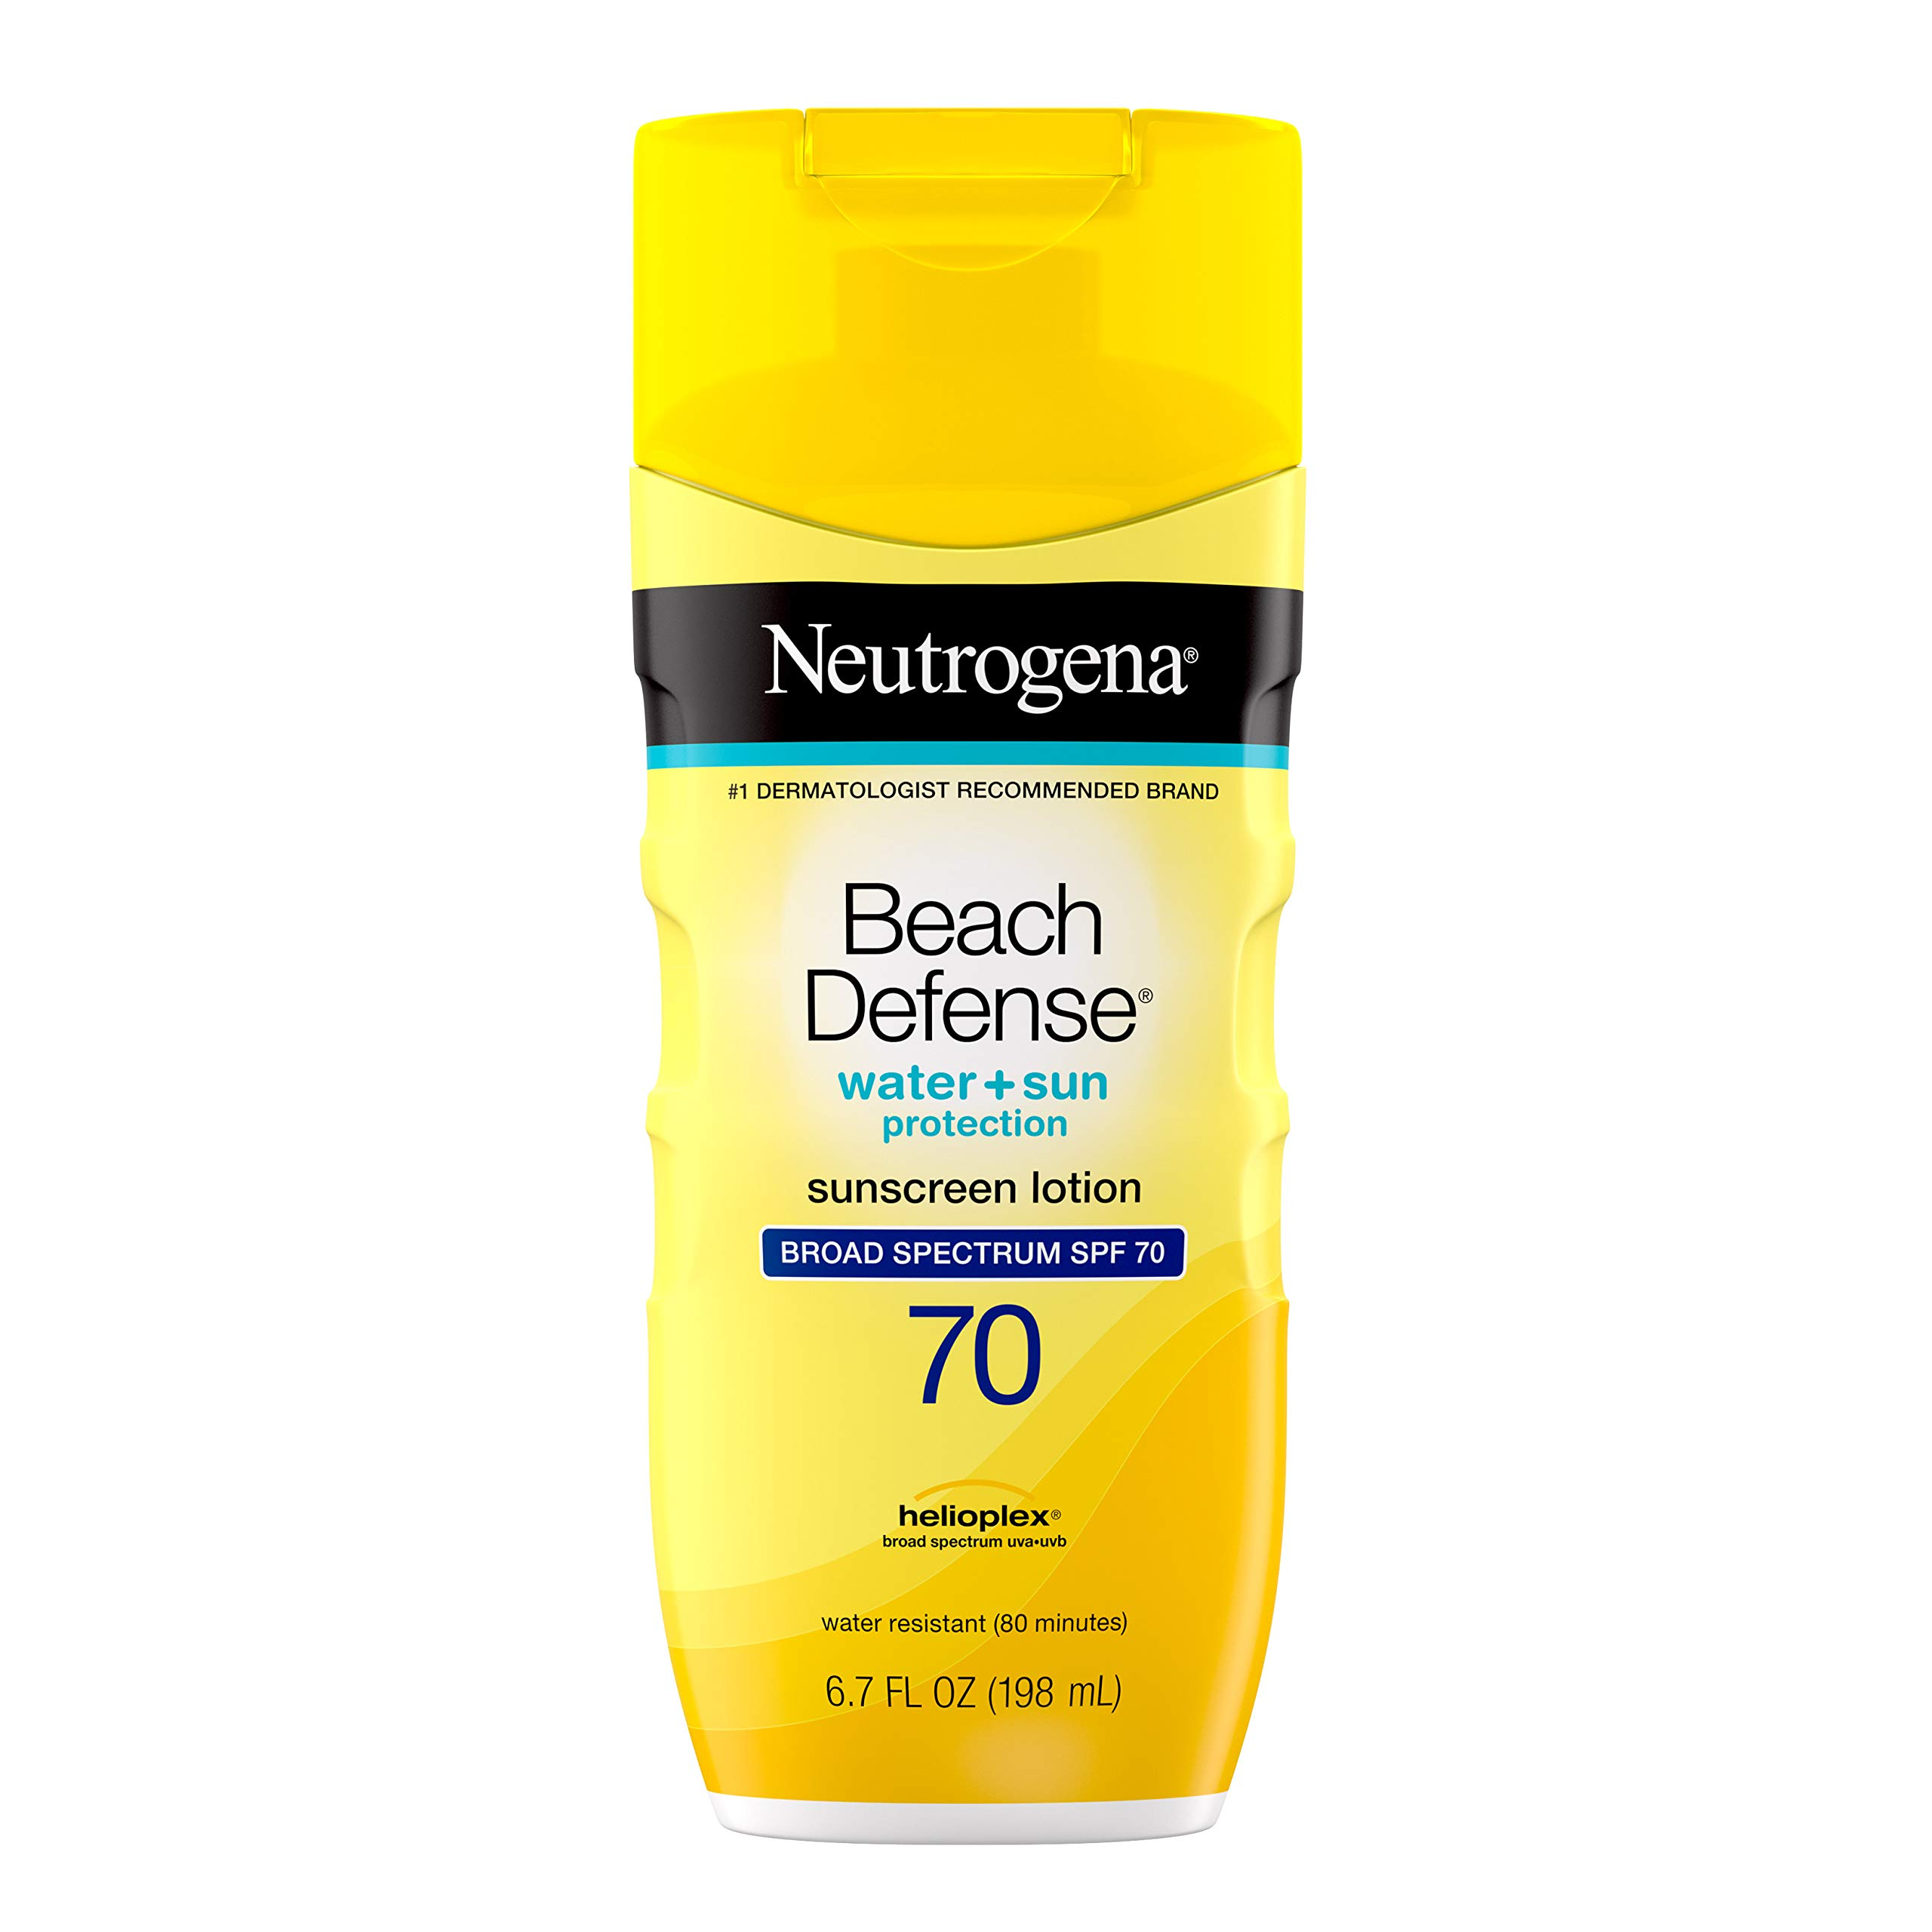 Neutrogena - Neutrogena Beach Defense Water Resistant Sunscreen Body Lotion with Broad Spectrum SPF 70, Oil-Free and Fast-Absorbing, 6.7 oz